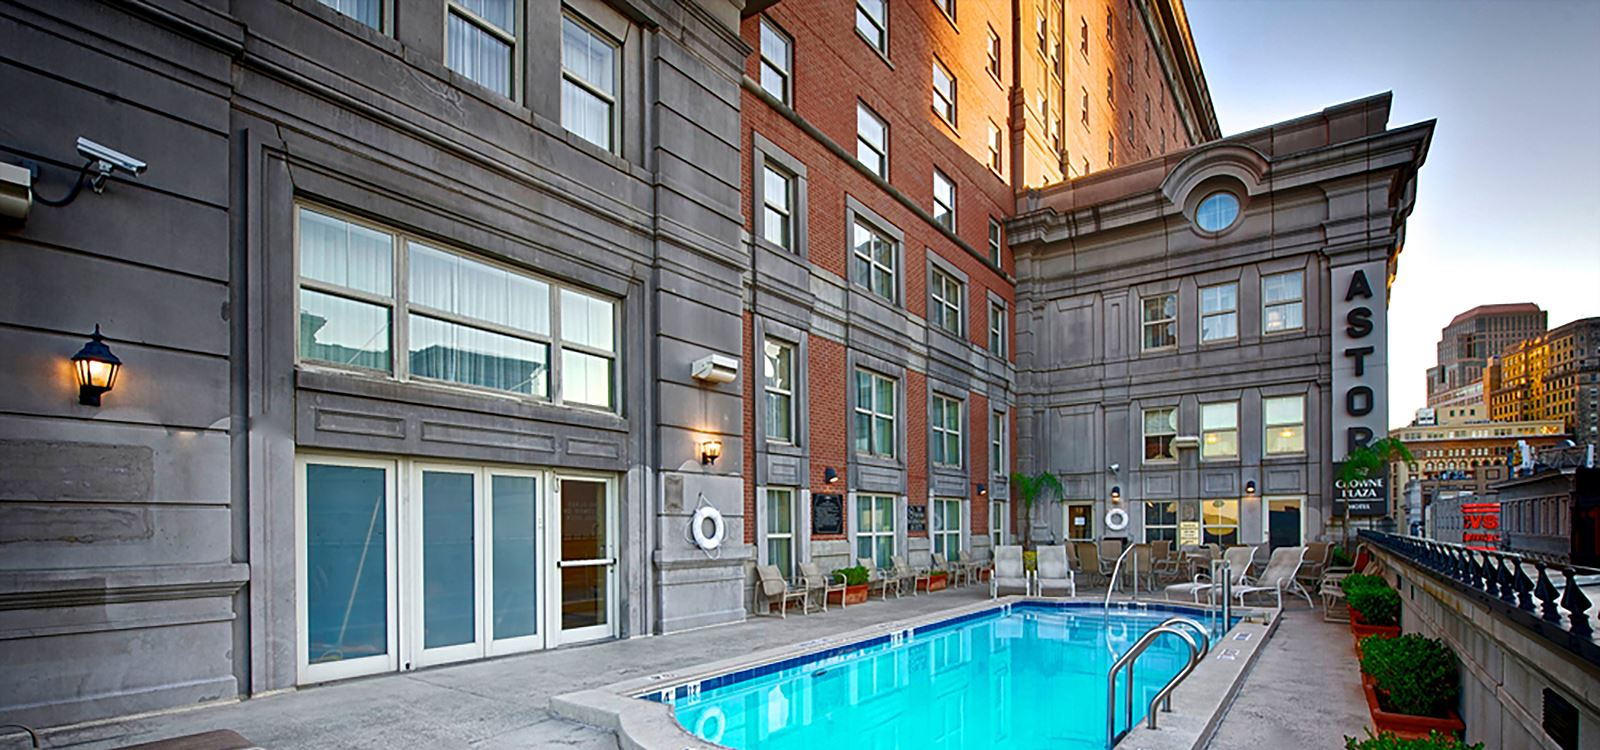 Astor Crowne Plaza - New Orleans French Quarter, Louisiana